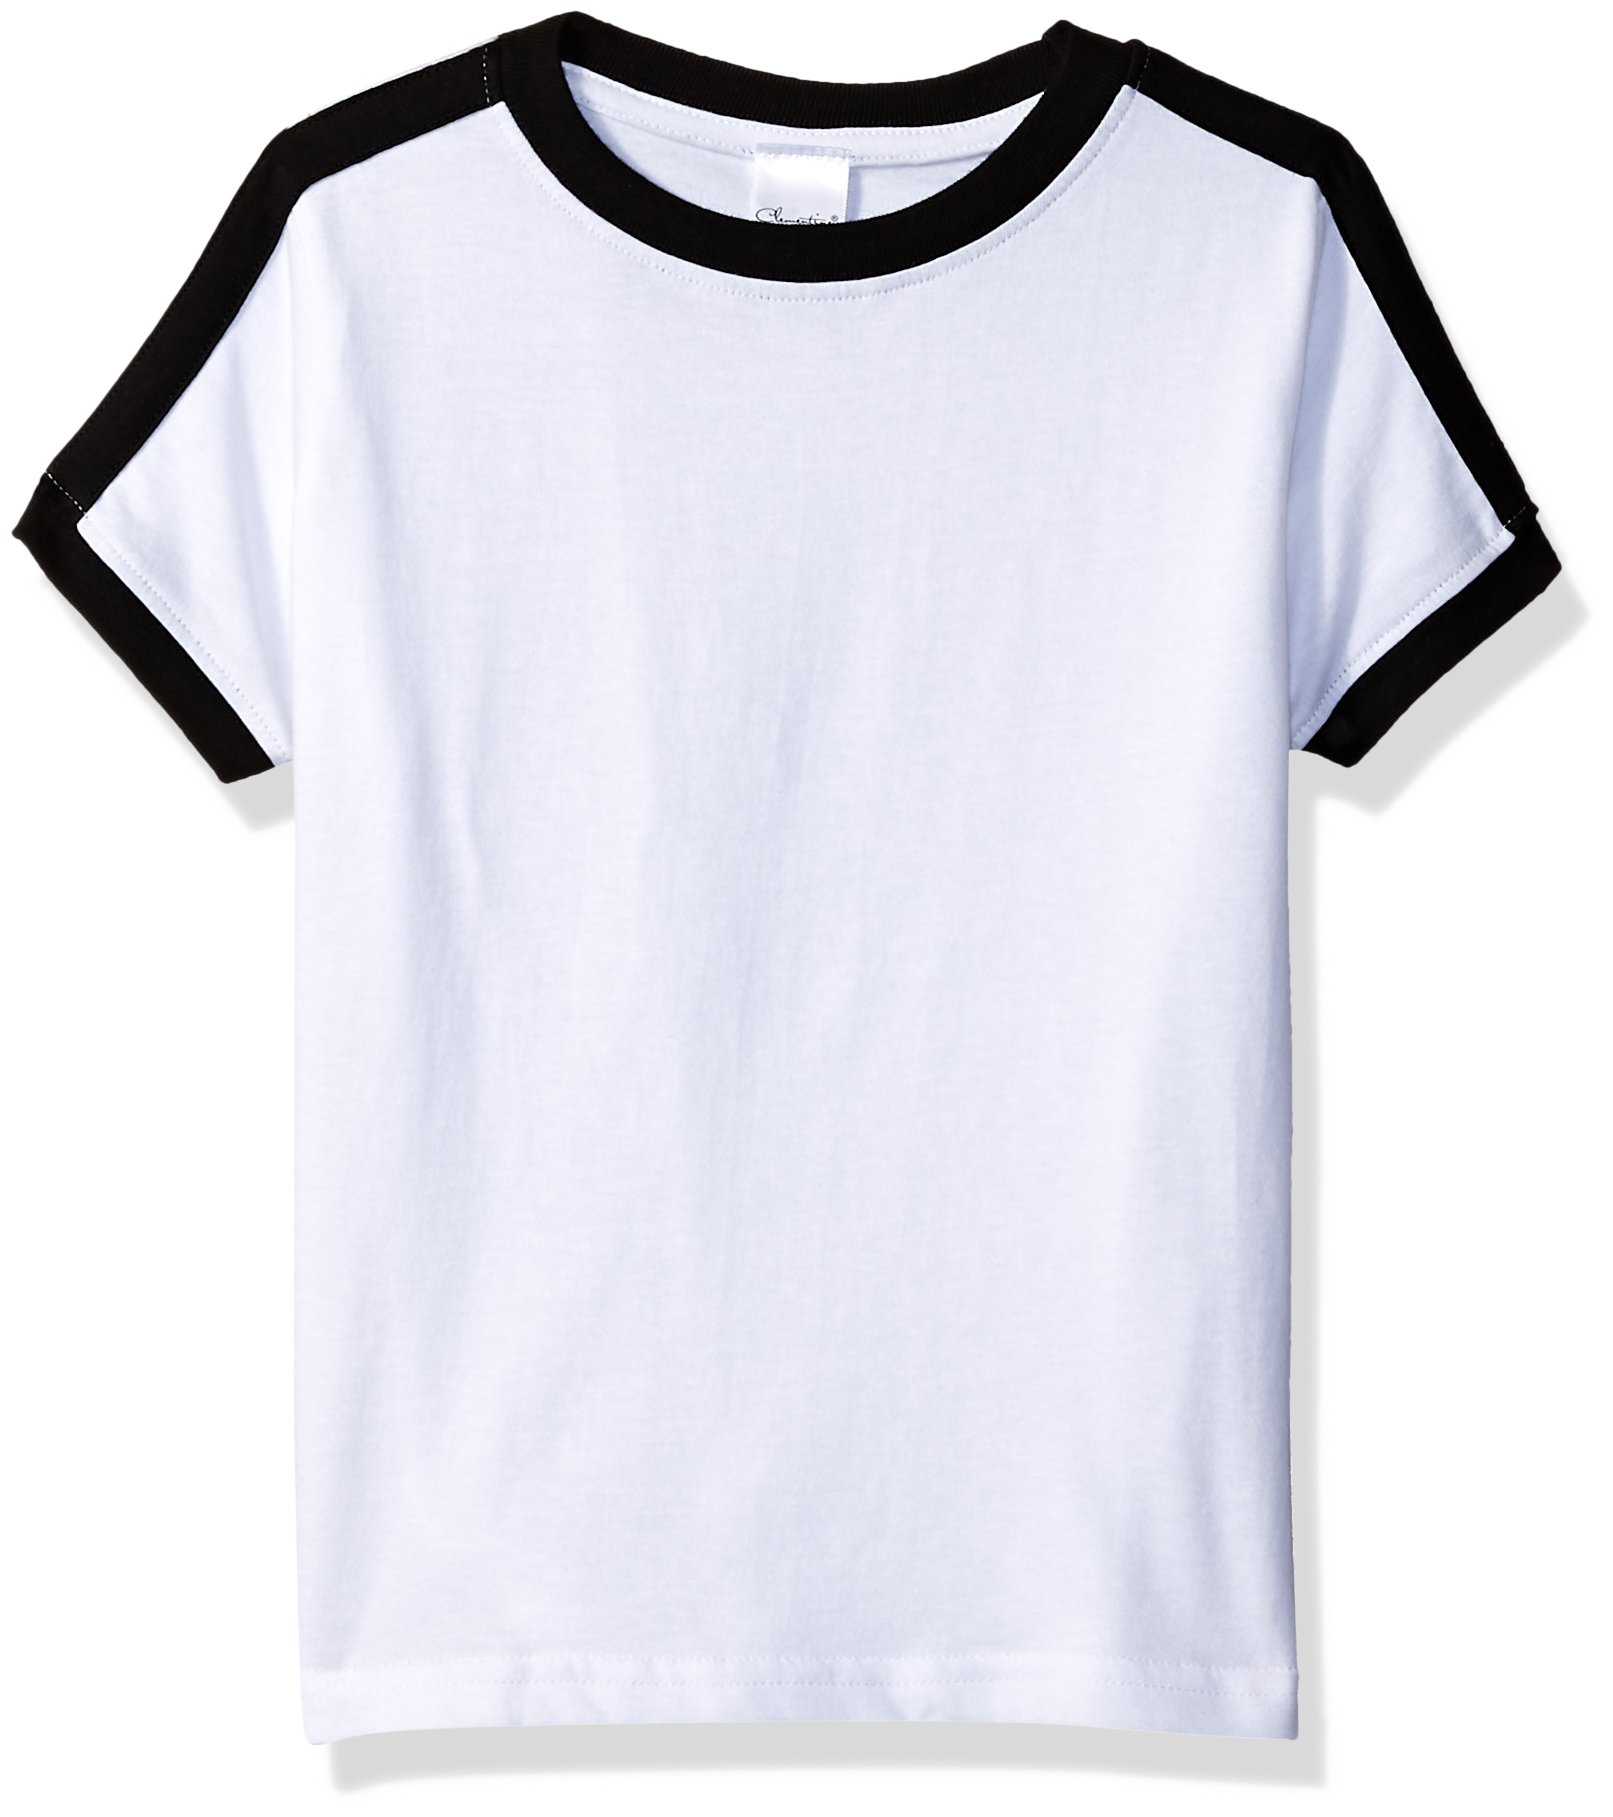 Clementine Toddler Kids Soccer Ringer Fine Jersey T-Shirt, White/Black, 4T by Clementine (Image #1)